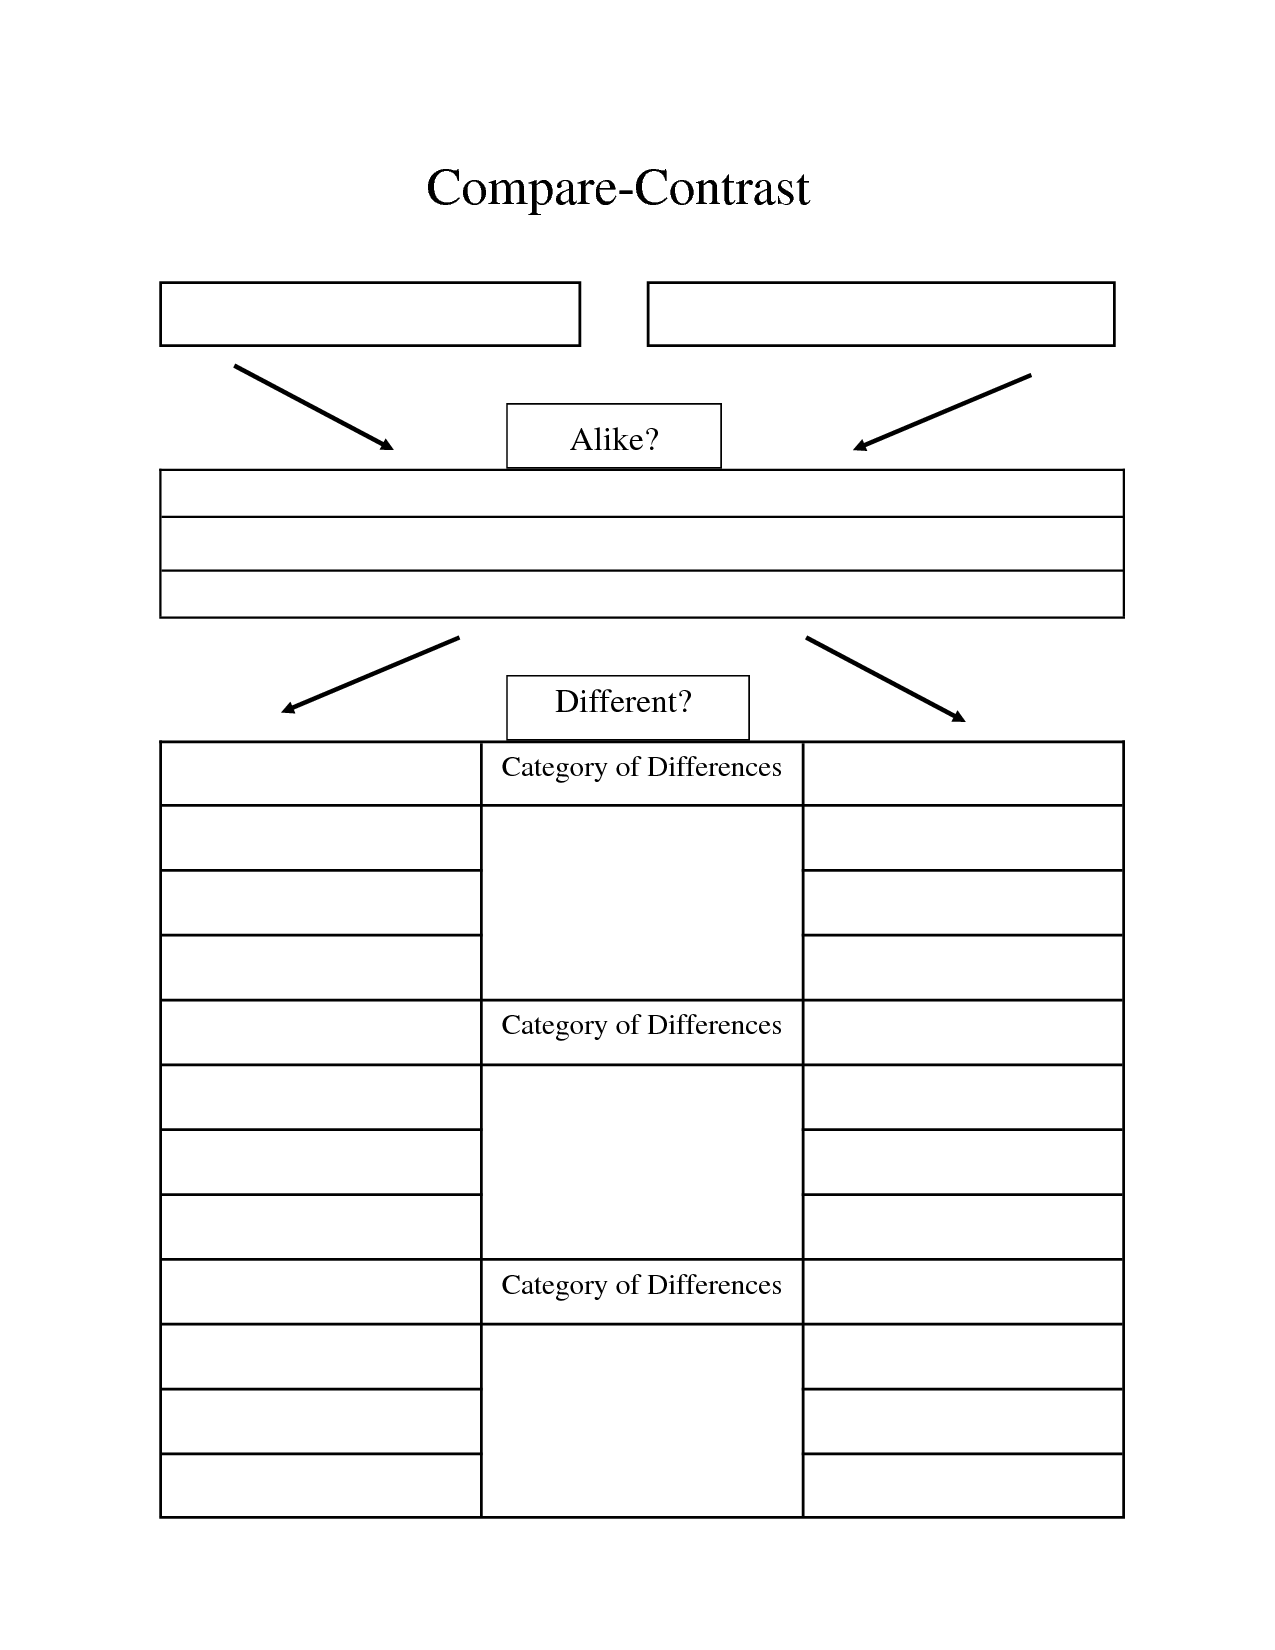 001 Compare And Contrast Essay Graphic Organizer Wondrous Middle School Full